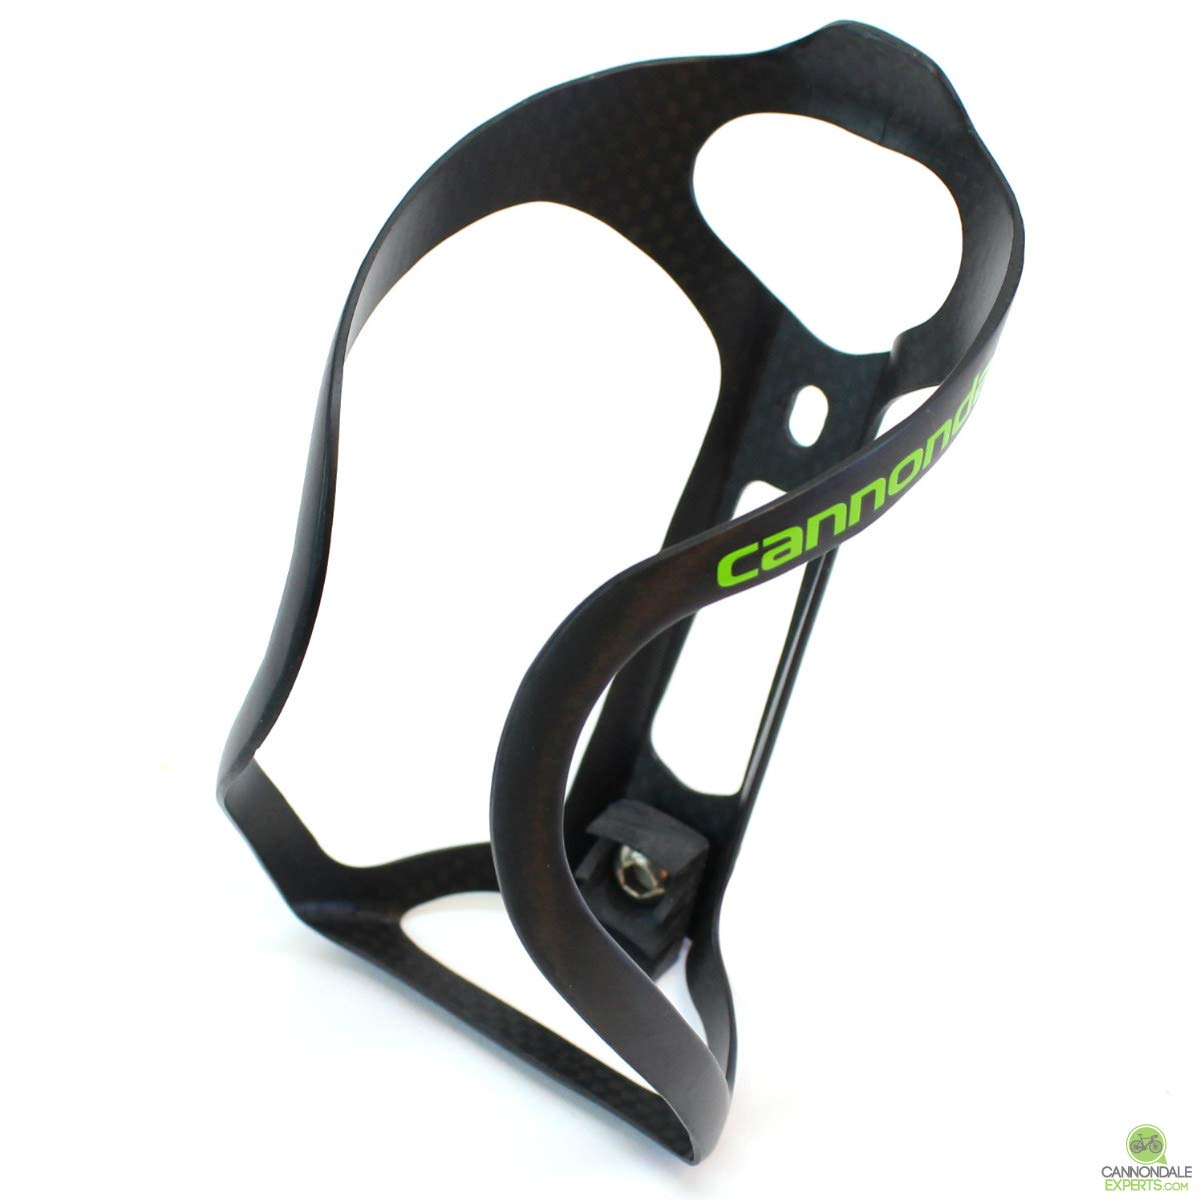 Cannondale GT-40 Carbon Bicycle Water Bottle Cage - Black/Green - CP5107U13OS by Cannondale